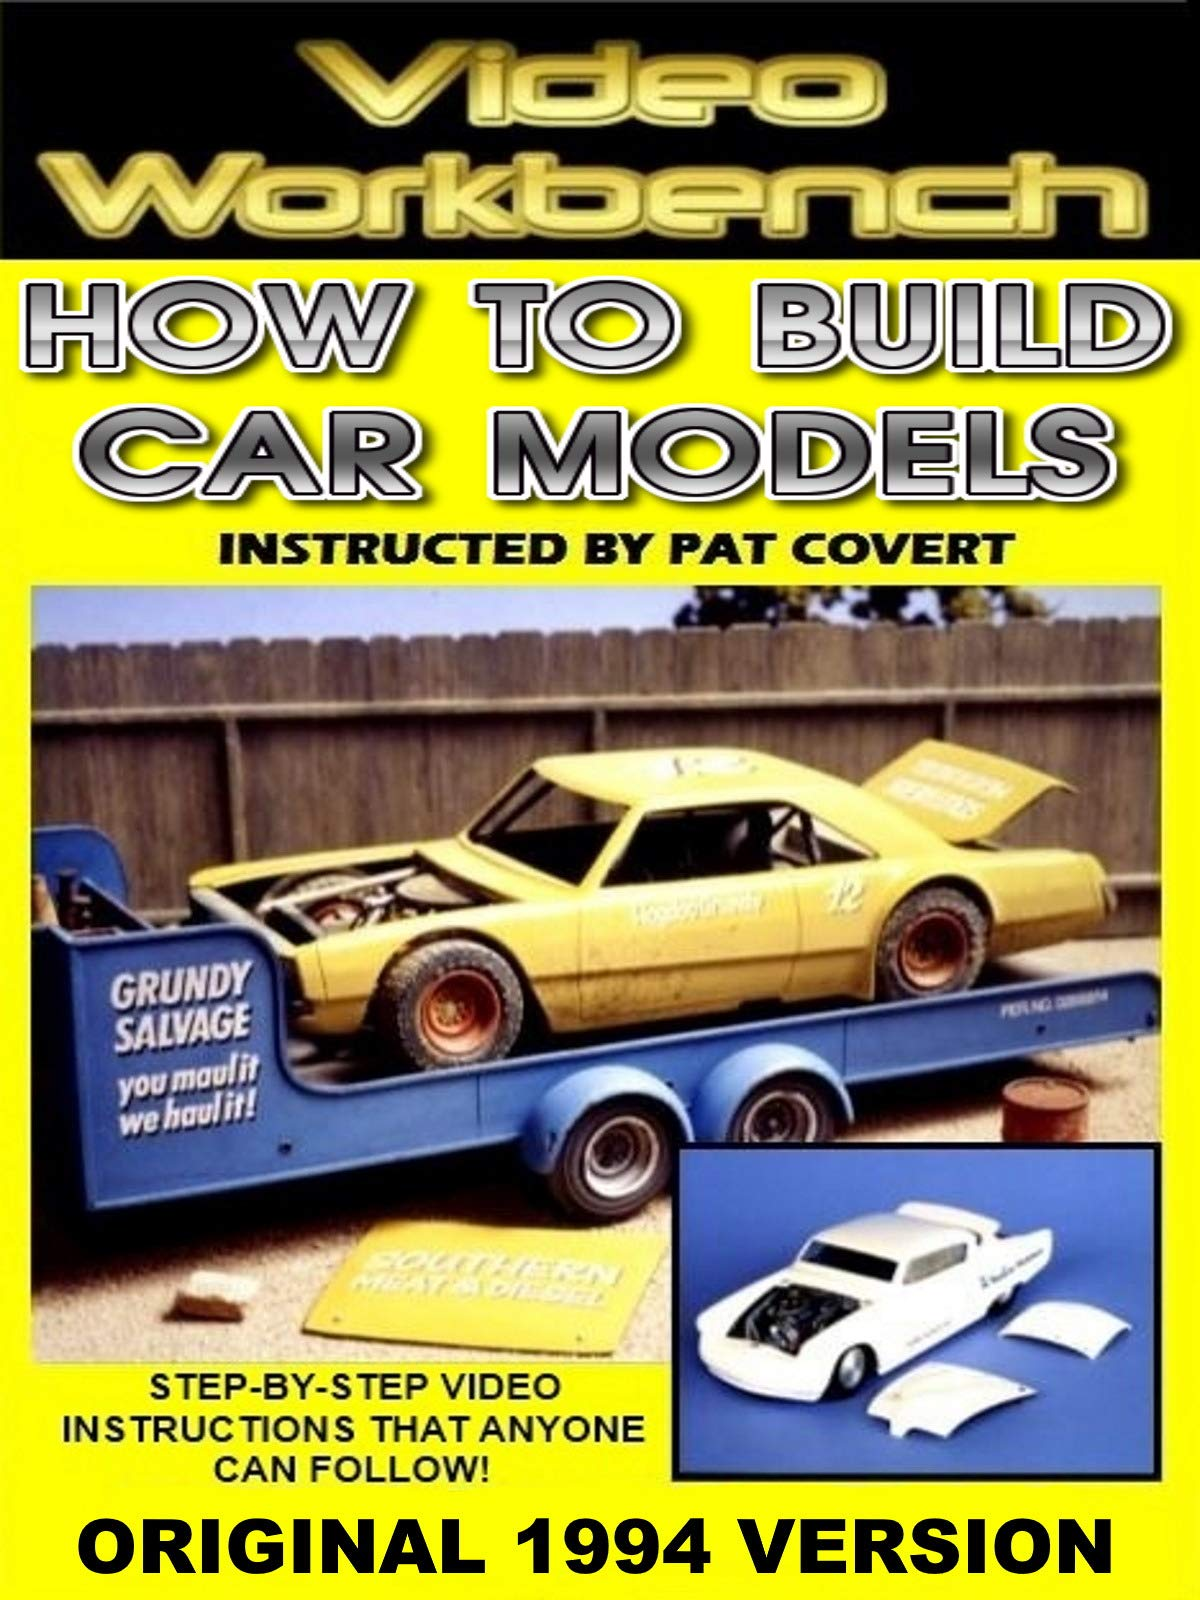 Video Workbench: How to Build Car Models (1994 Original)